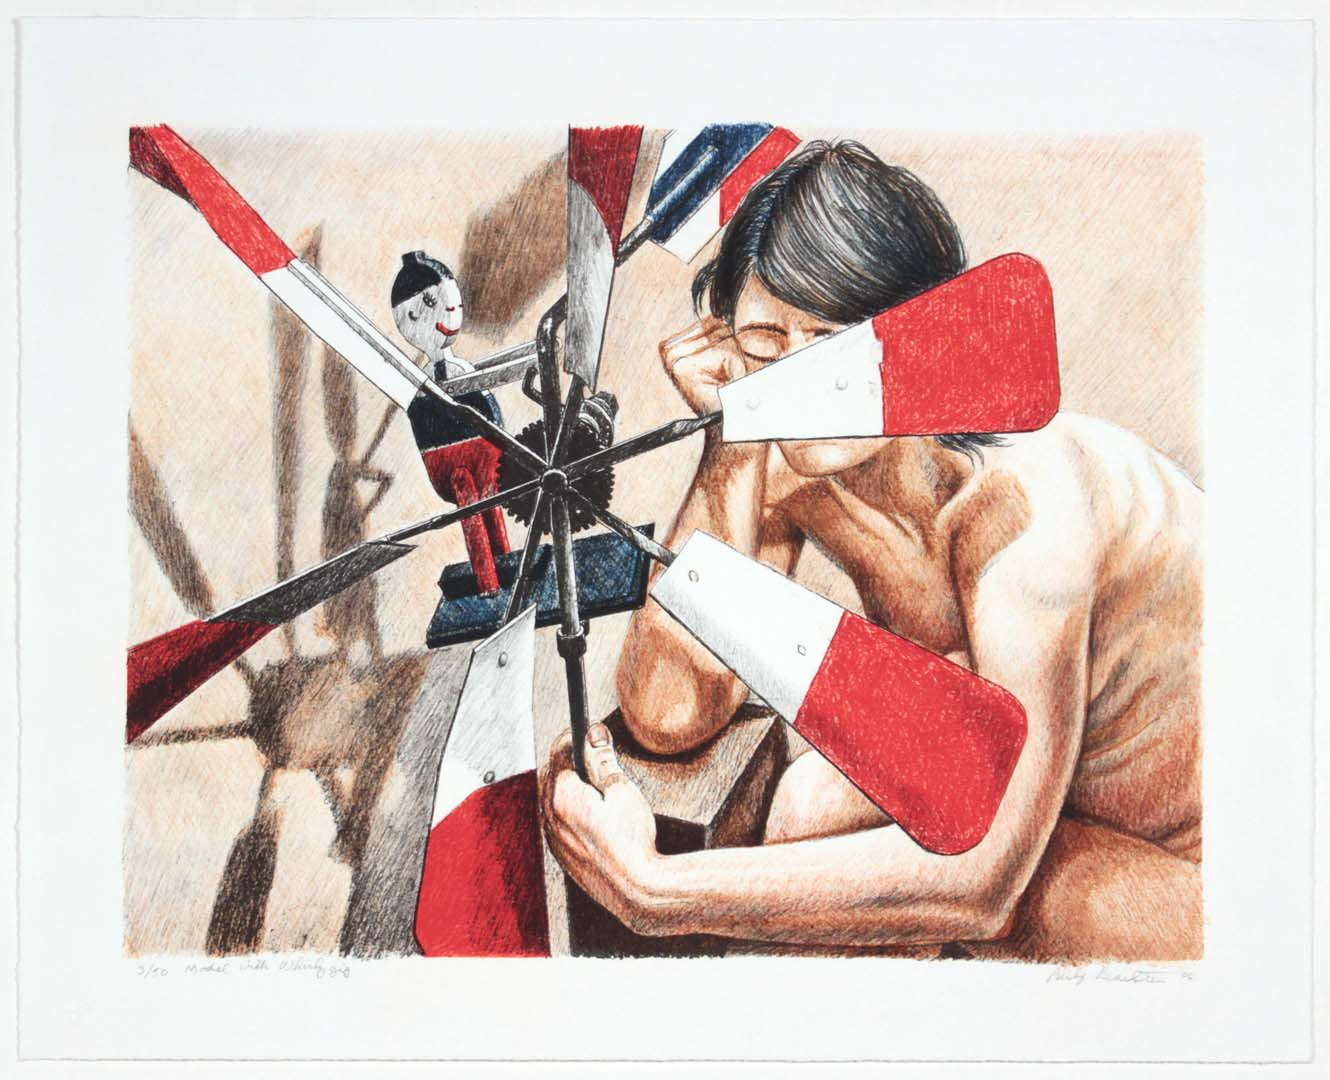 2006 Model with Whirlygig Lithograph on Paper 19.5 x 23.25